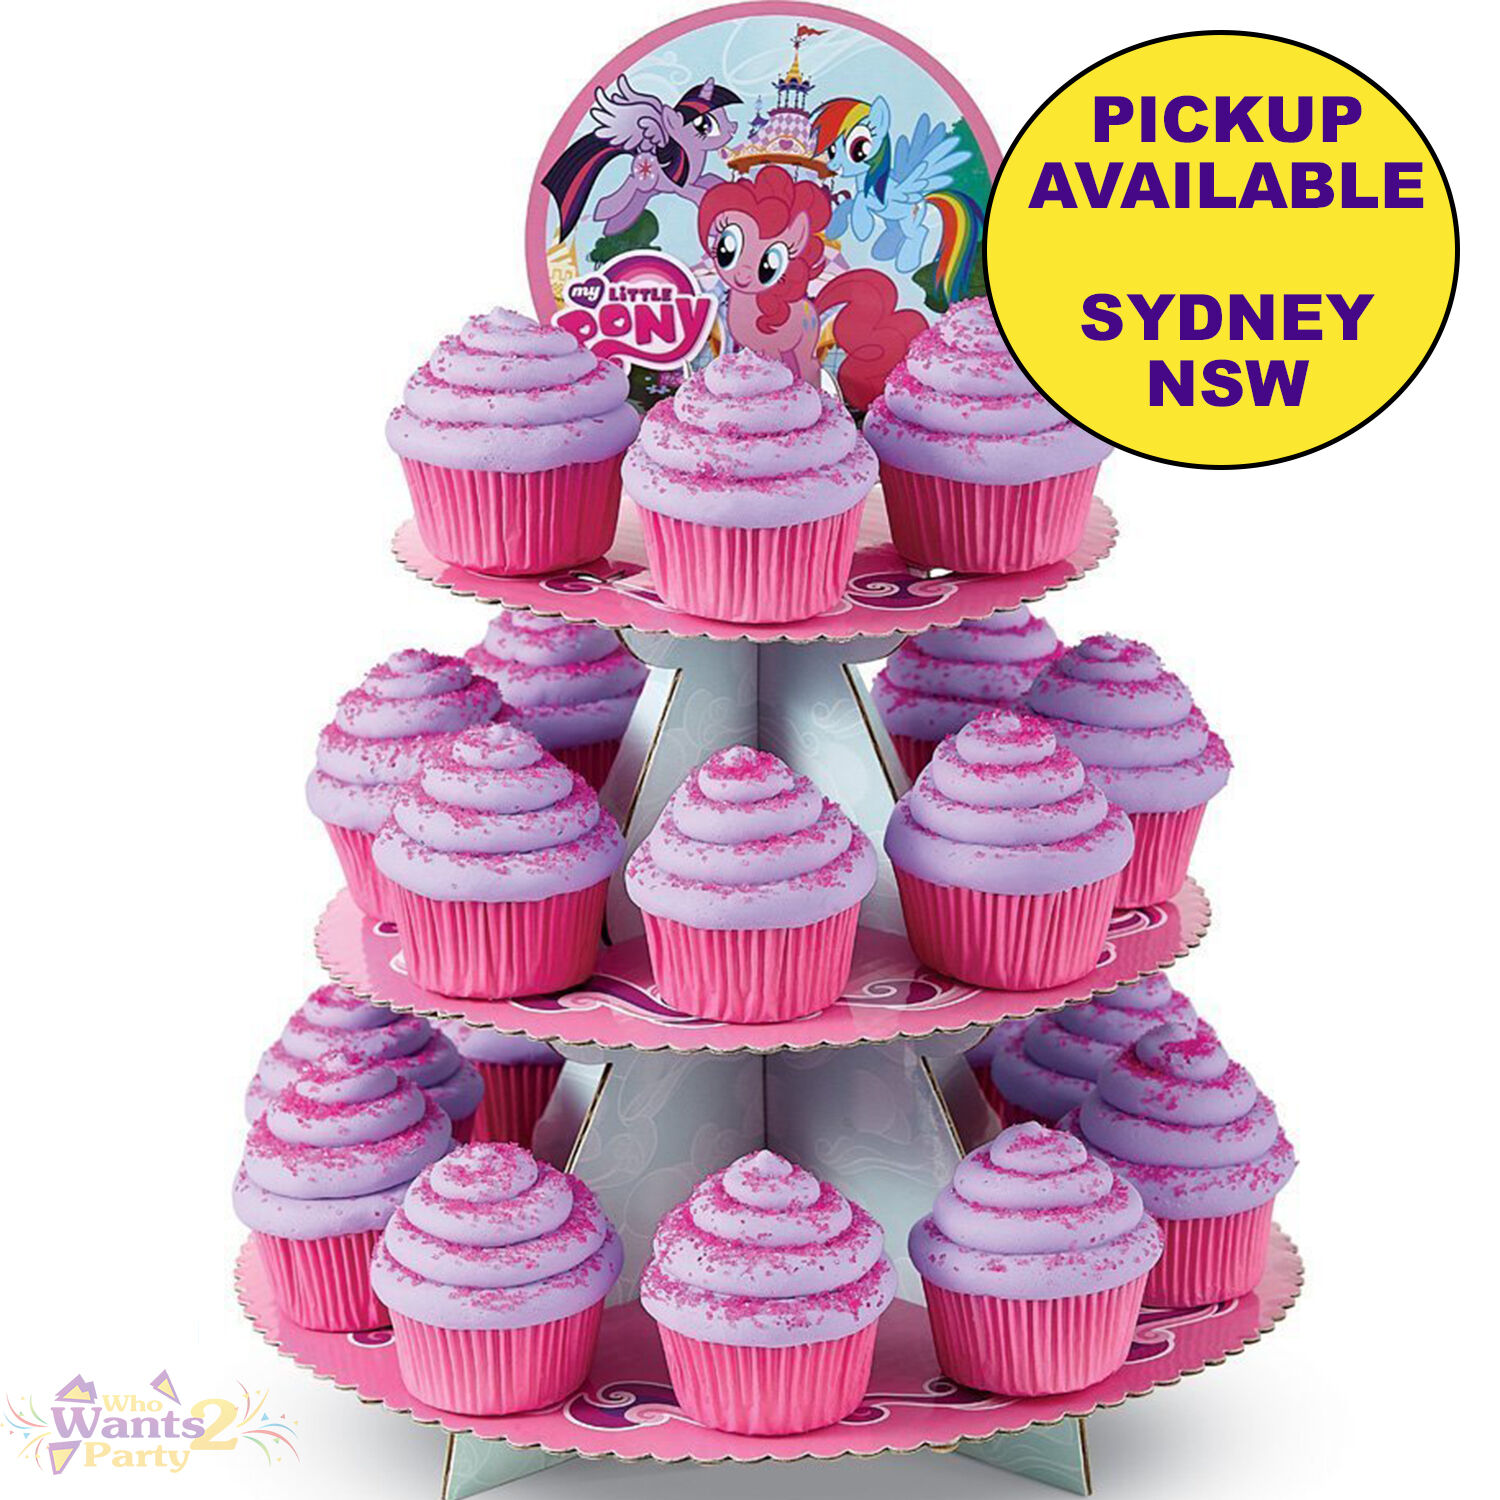 Details About MY LITTLE PONY PARTY SUPPLIES BIRTHDAY CAKE CUPCAKE STAND WILTON TREAT HOLDER